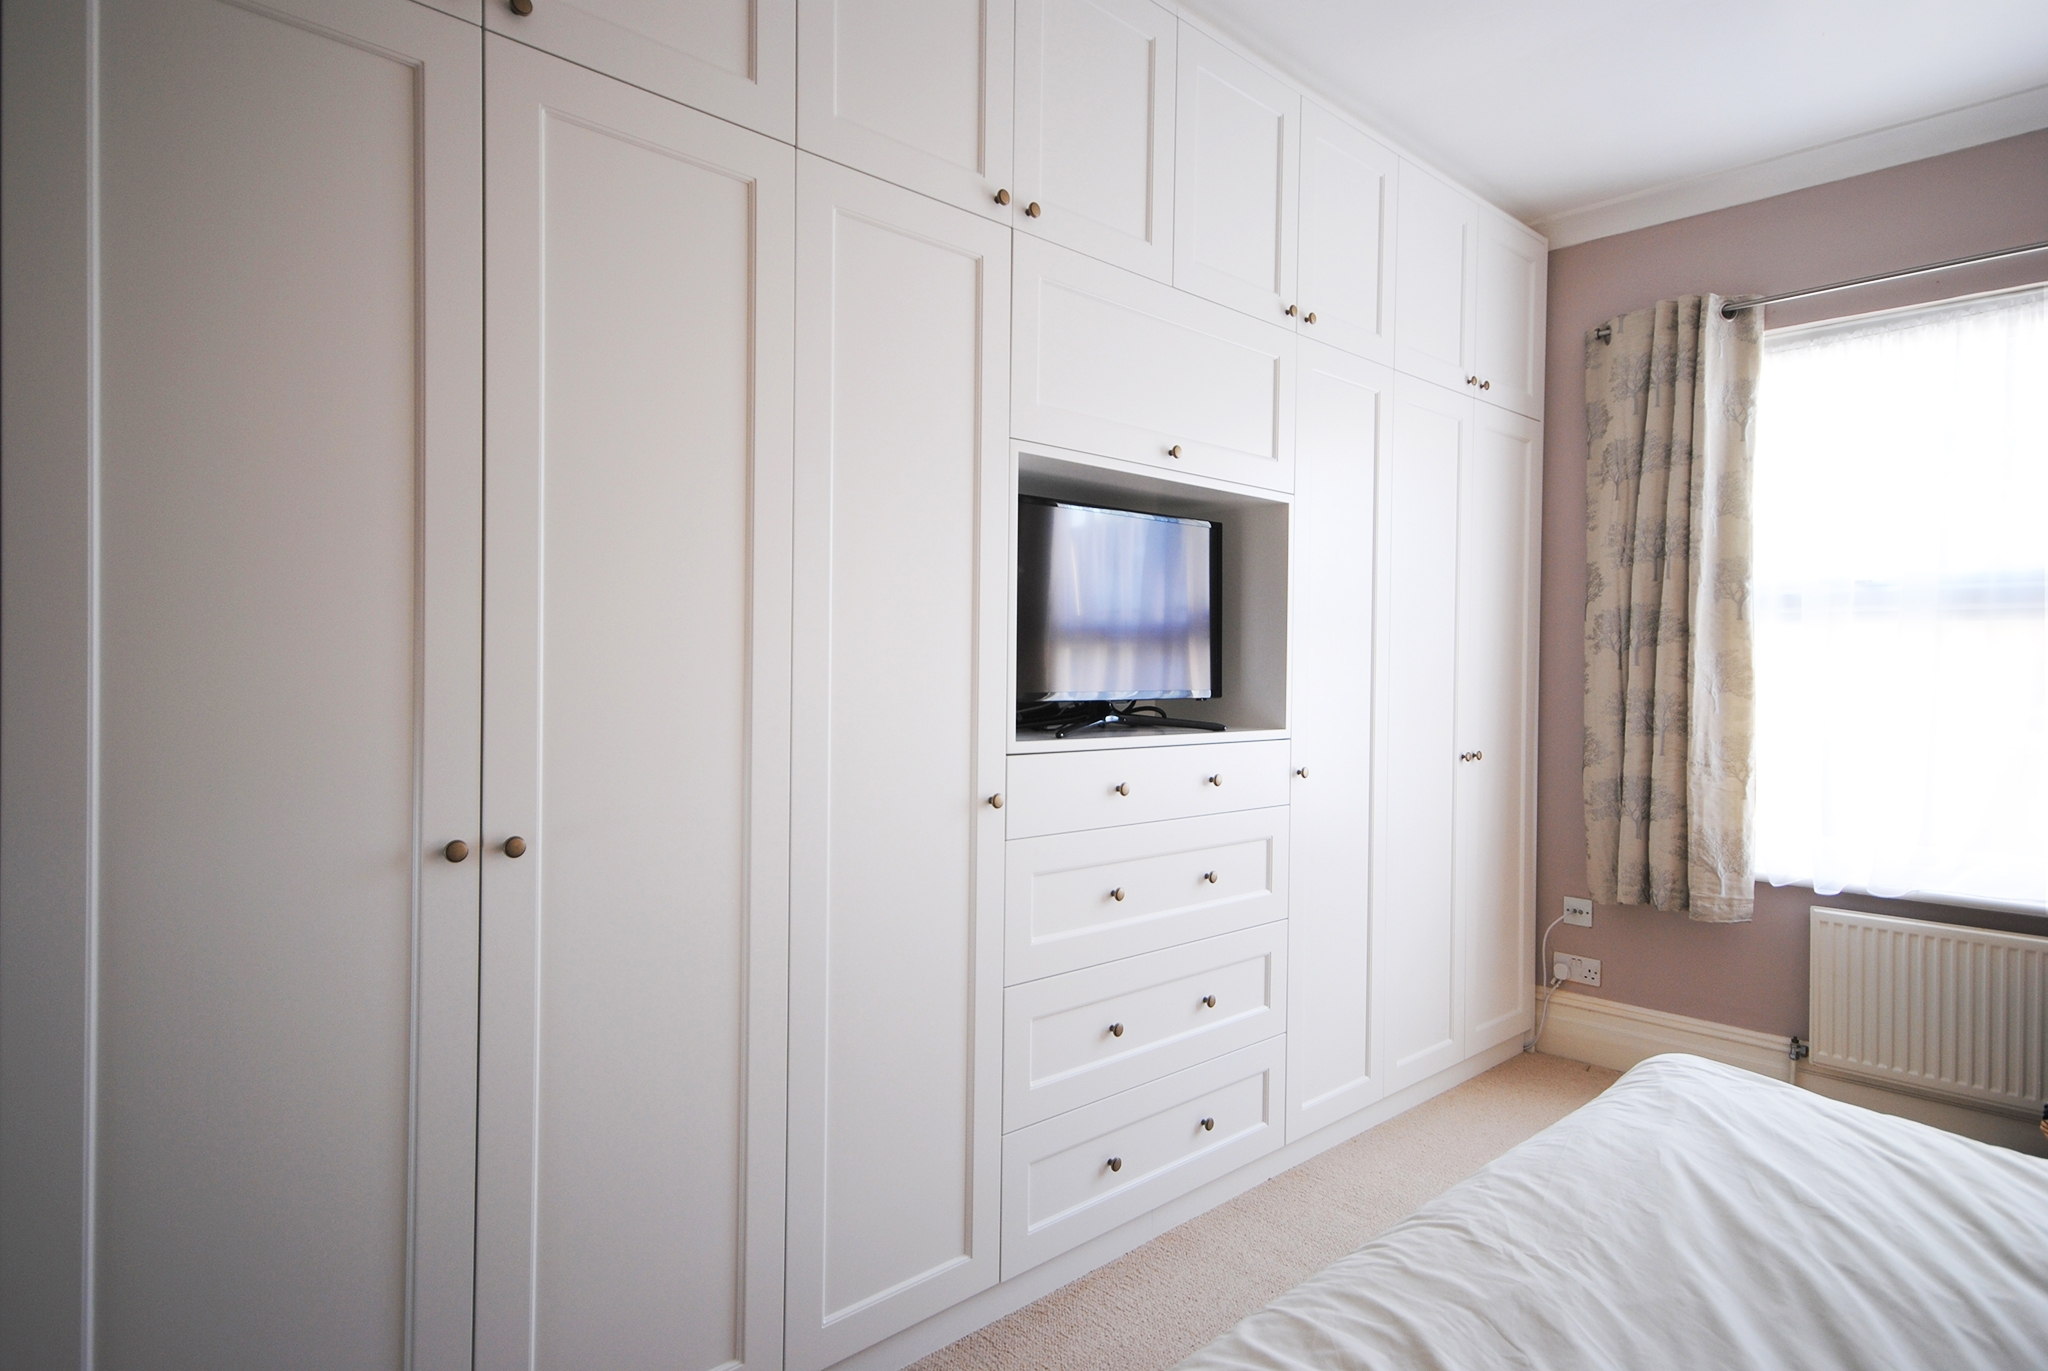 Creative Woodwork Combined A Tv Unit And Wardrobe To Make This Intended For Built In Wardrobes With Tv Space (Image 5 of 15)